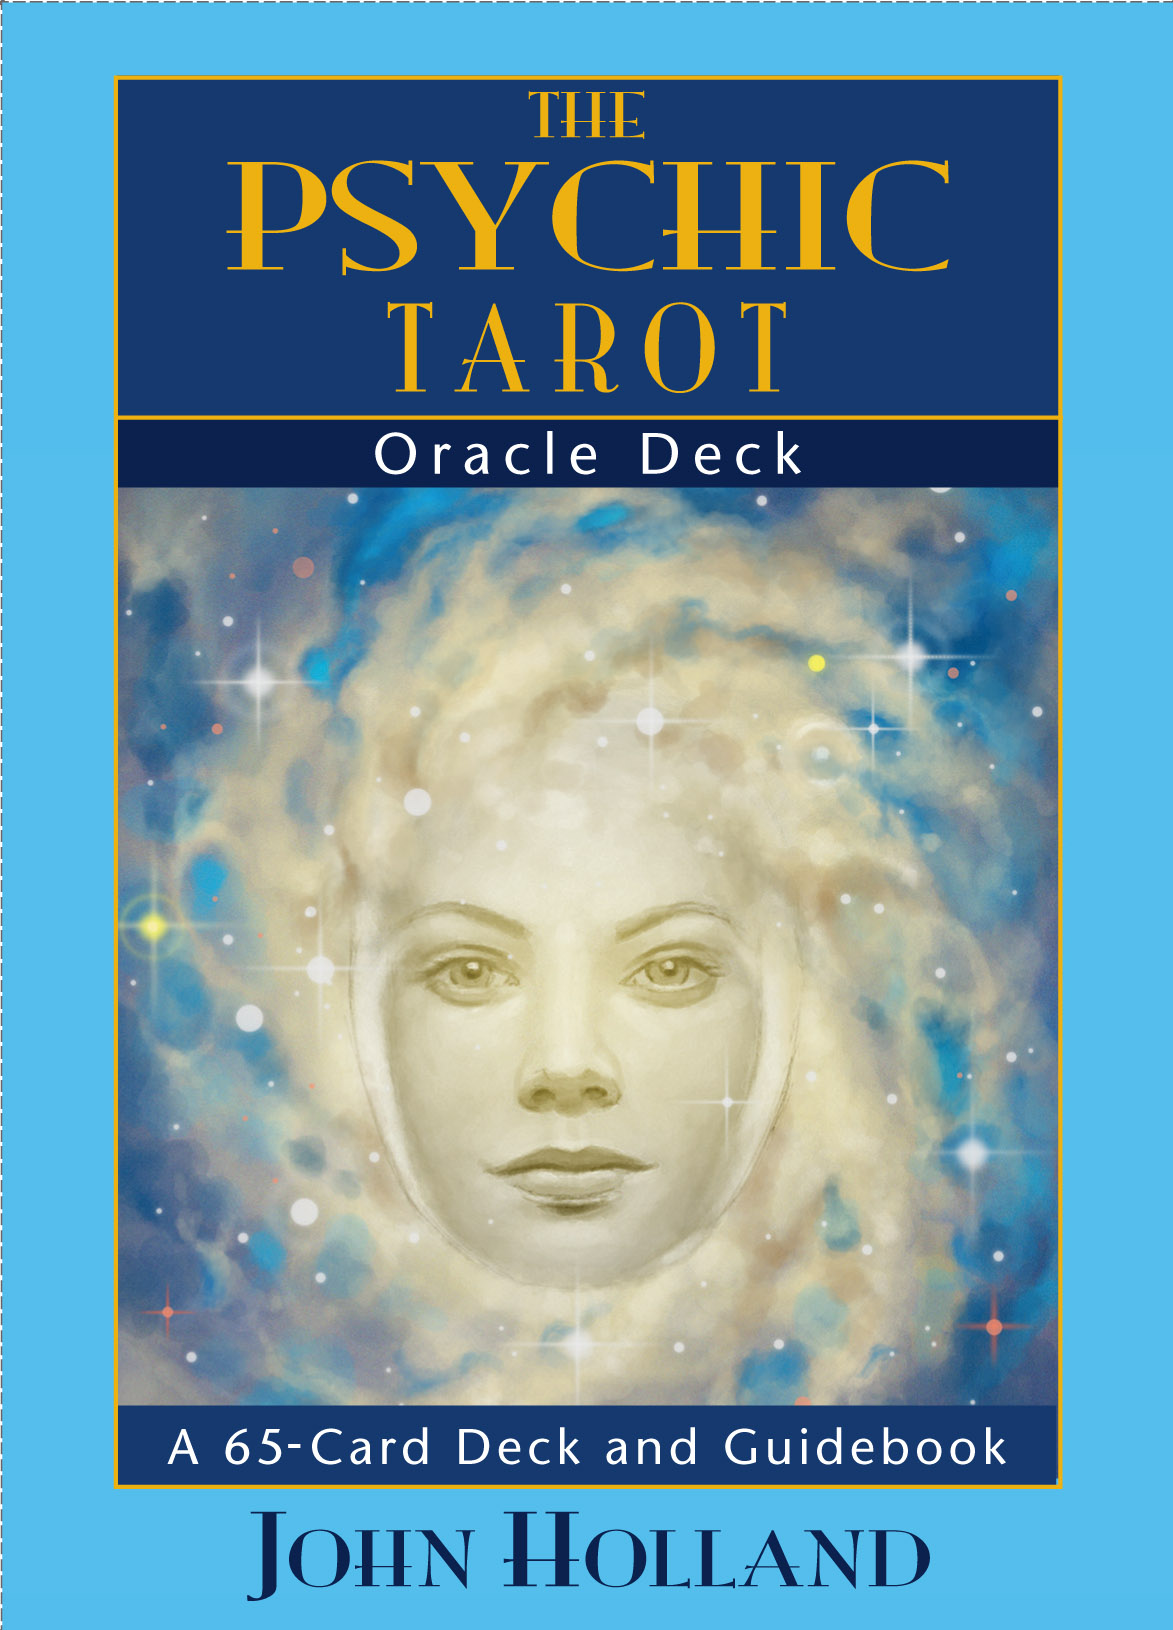 Psychic Tarot Cards Meanings: Barnes And Noble Oct 4th